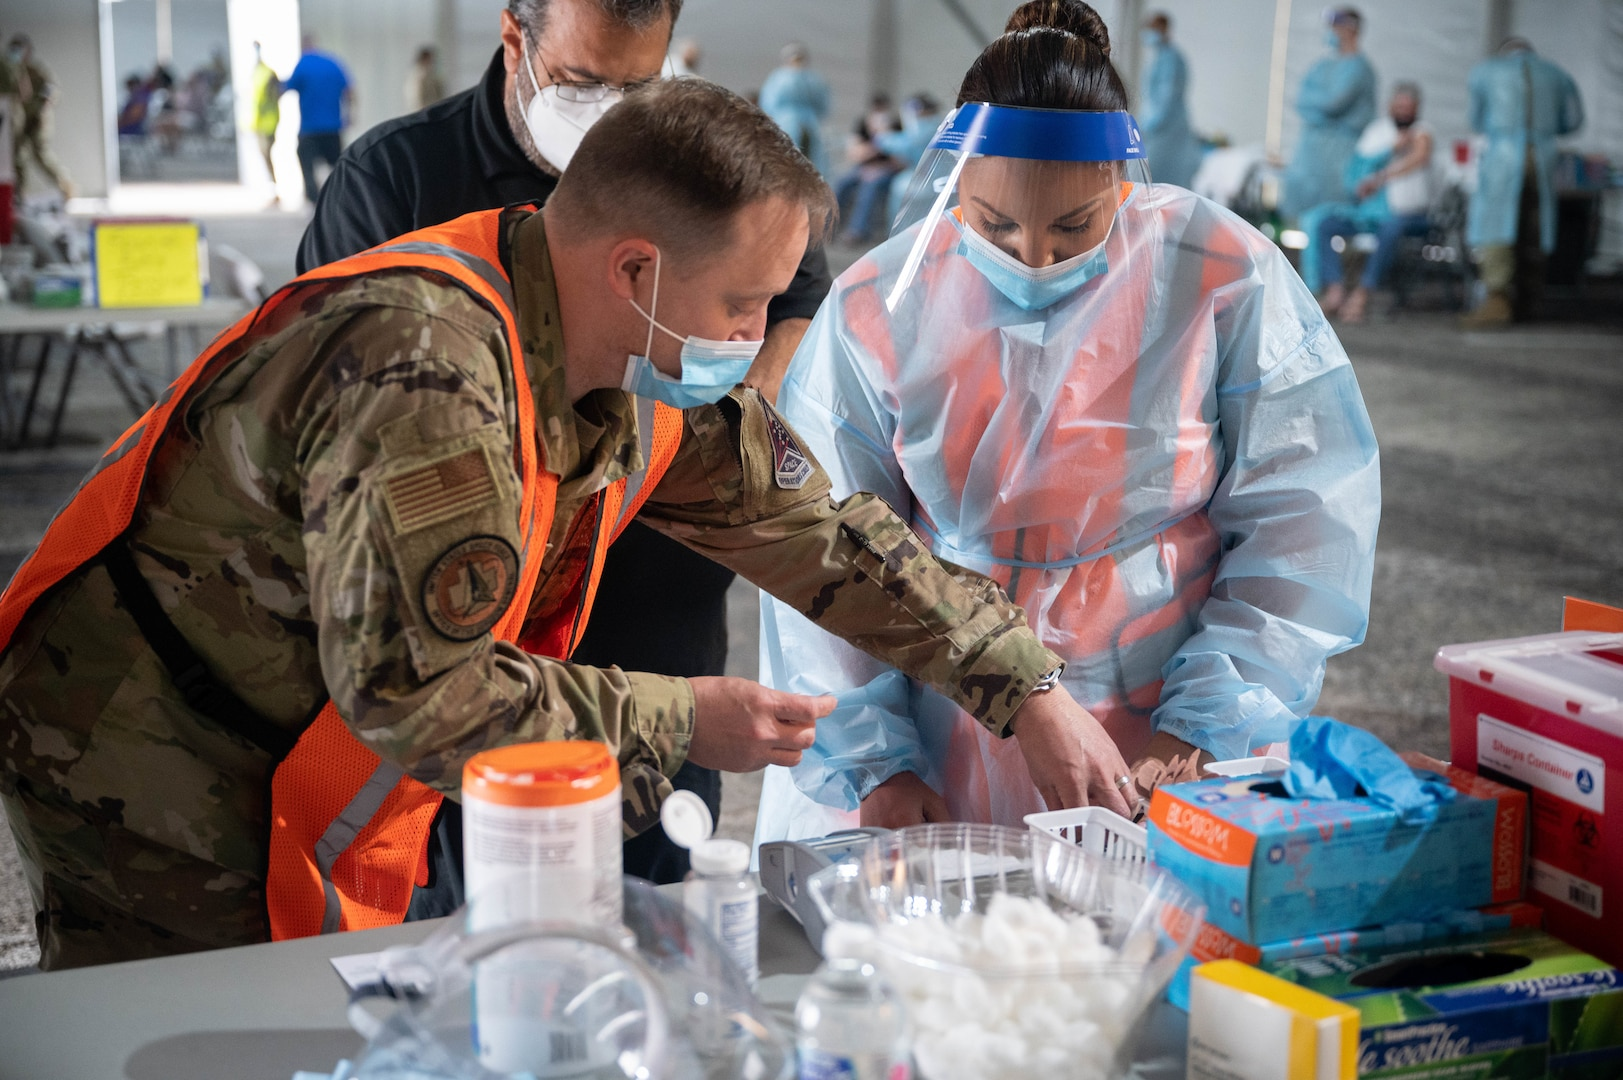 U.S. Air Force Maj. Michael Jessup (left) assists U.S. Air Force Tech. Sgt. Jerrica Wild (right), both deployed from Peterson Air Force Base, Colorado, with paper work in preparation for vaccine distribution at the Tampa Community Vaccination Center in Tampa, Florida, March 3, 2021. Jessup and Wild are two of nearly 140 Airmen on site at the state-led, federally-supported operation. U.S. Northern Command, through U.S. Army North, remains committed to providing continued, flexible Department of Defense support to the Federal Emergency Management Agency as part of the whole-of-government response to COVID-19. (U.S. Air Force photo by Master Sgt. Holly Roberts-Davis/Luke AFB Public Affairs)